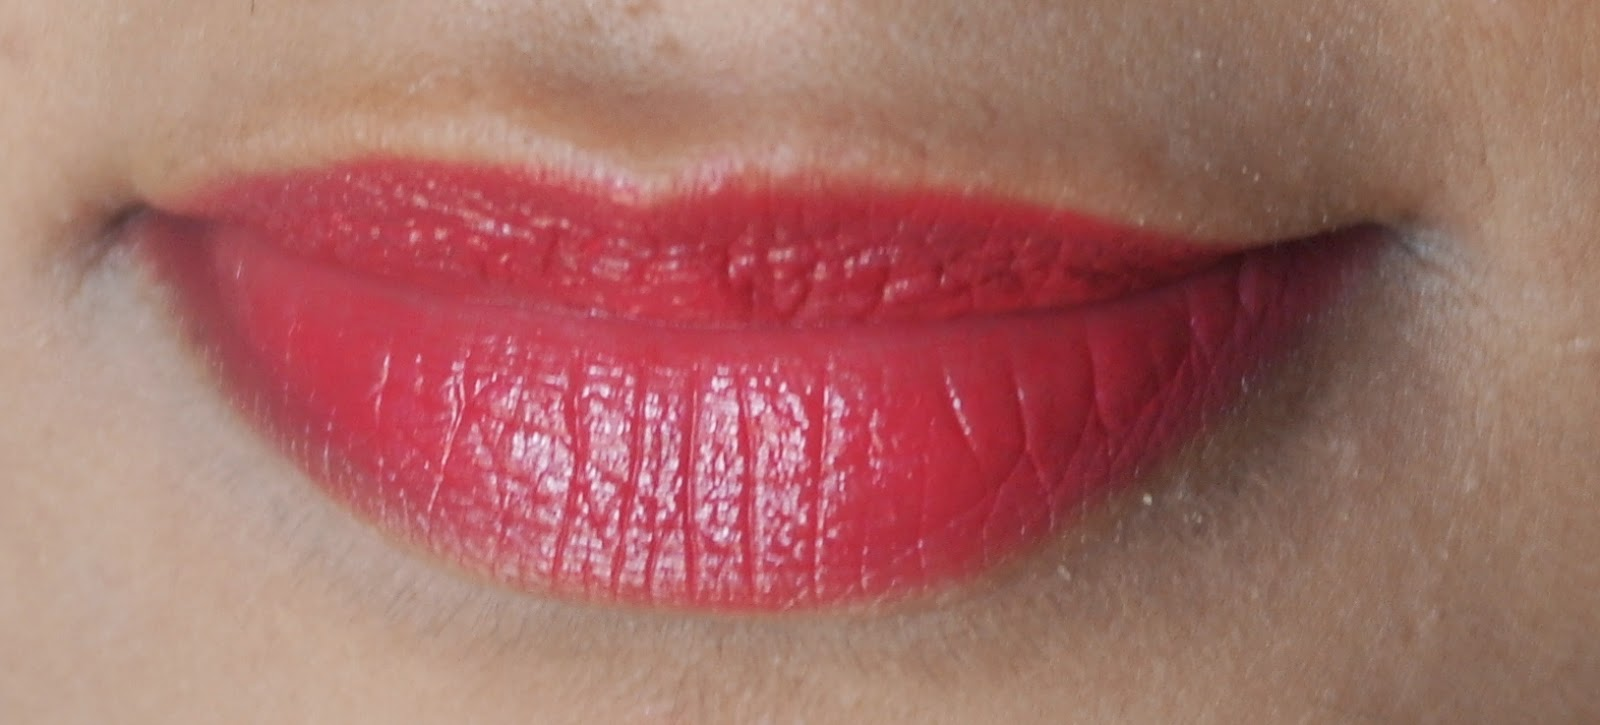 Revlon super lustrous lipstick swatches on lips images